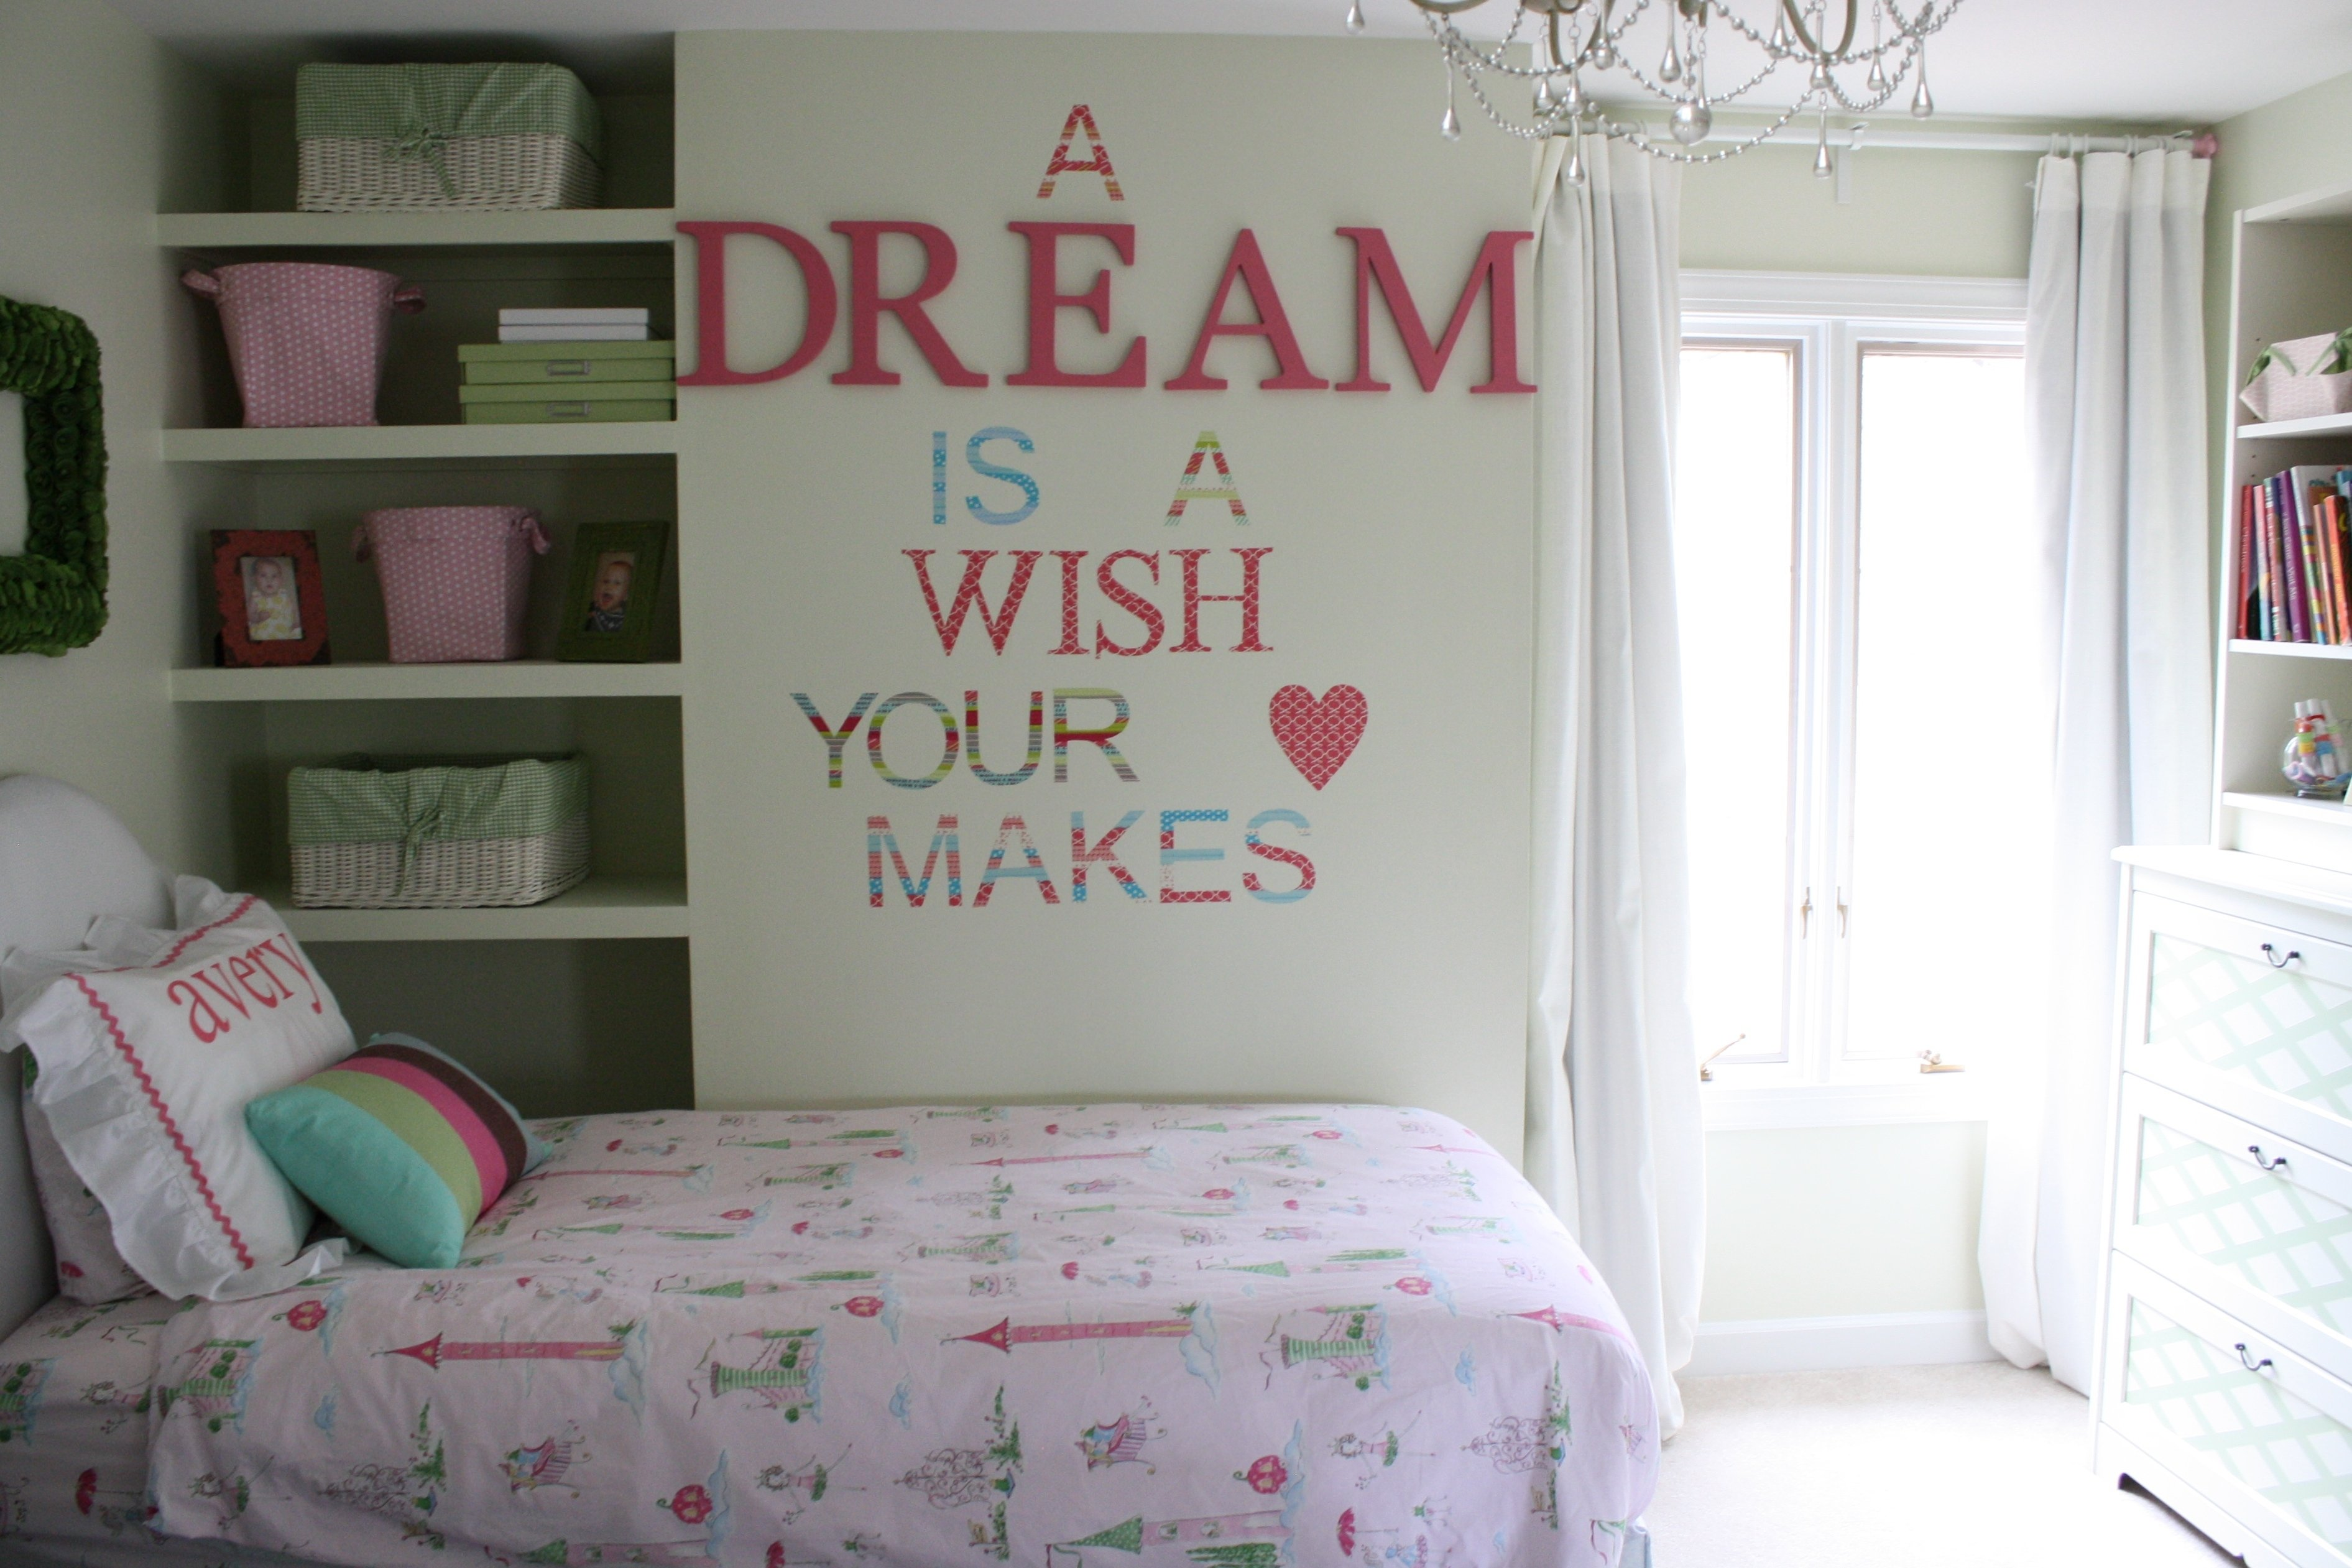 10 Fabulous Diy Decorating Ideas For Bedrooms diy bedroom wall decor awesome design wonderful room as wells 2020